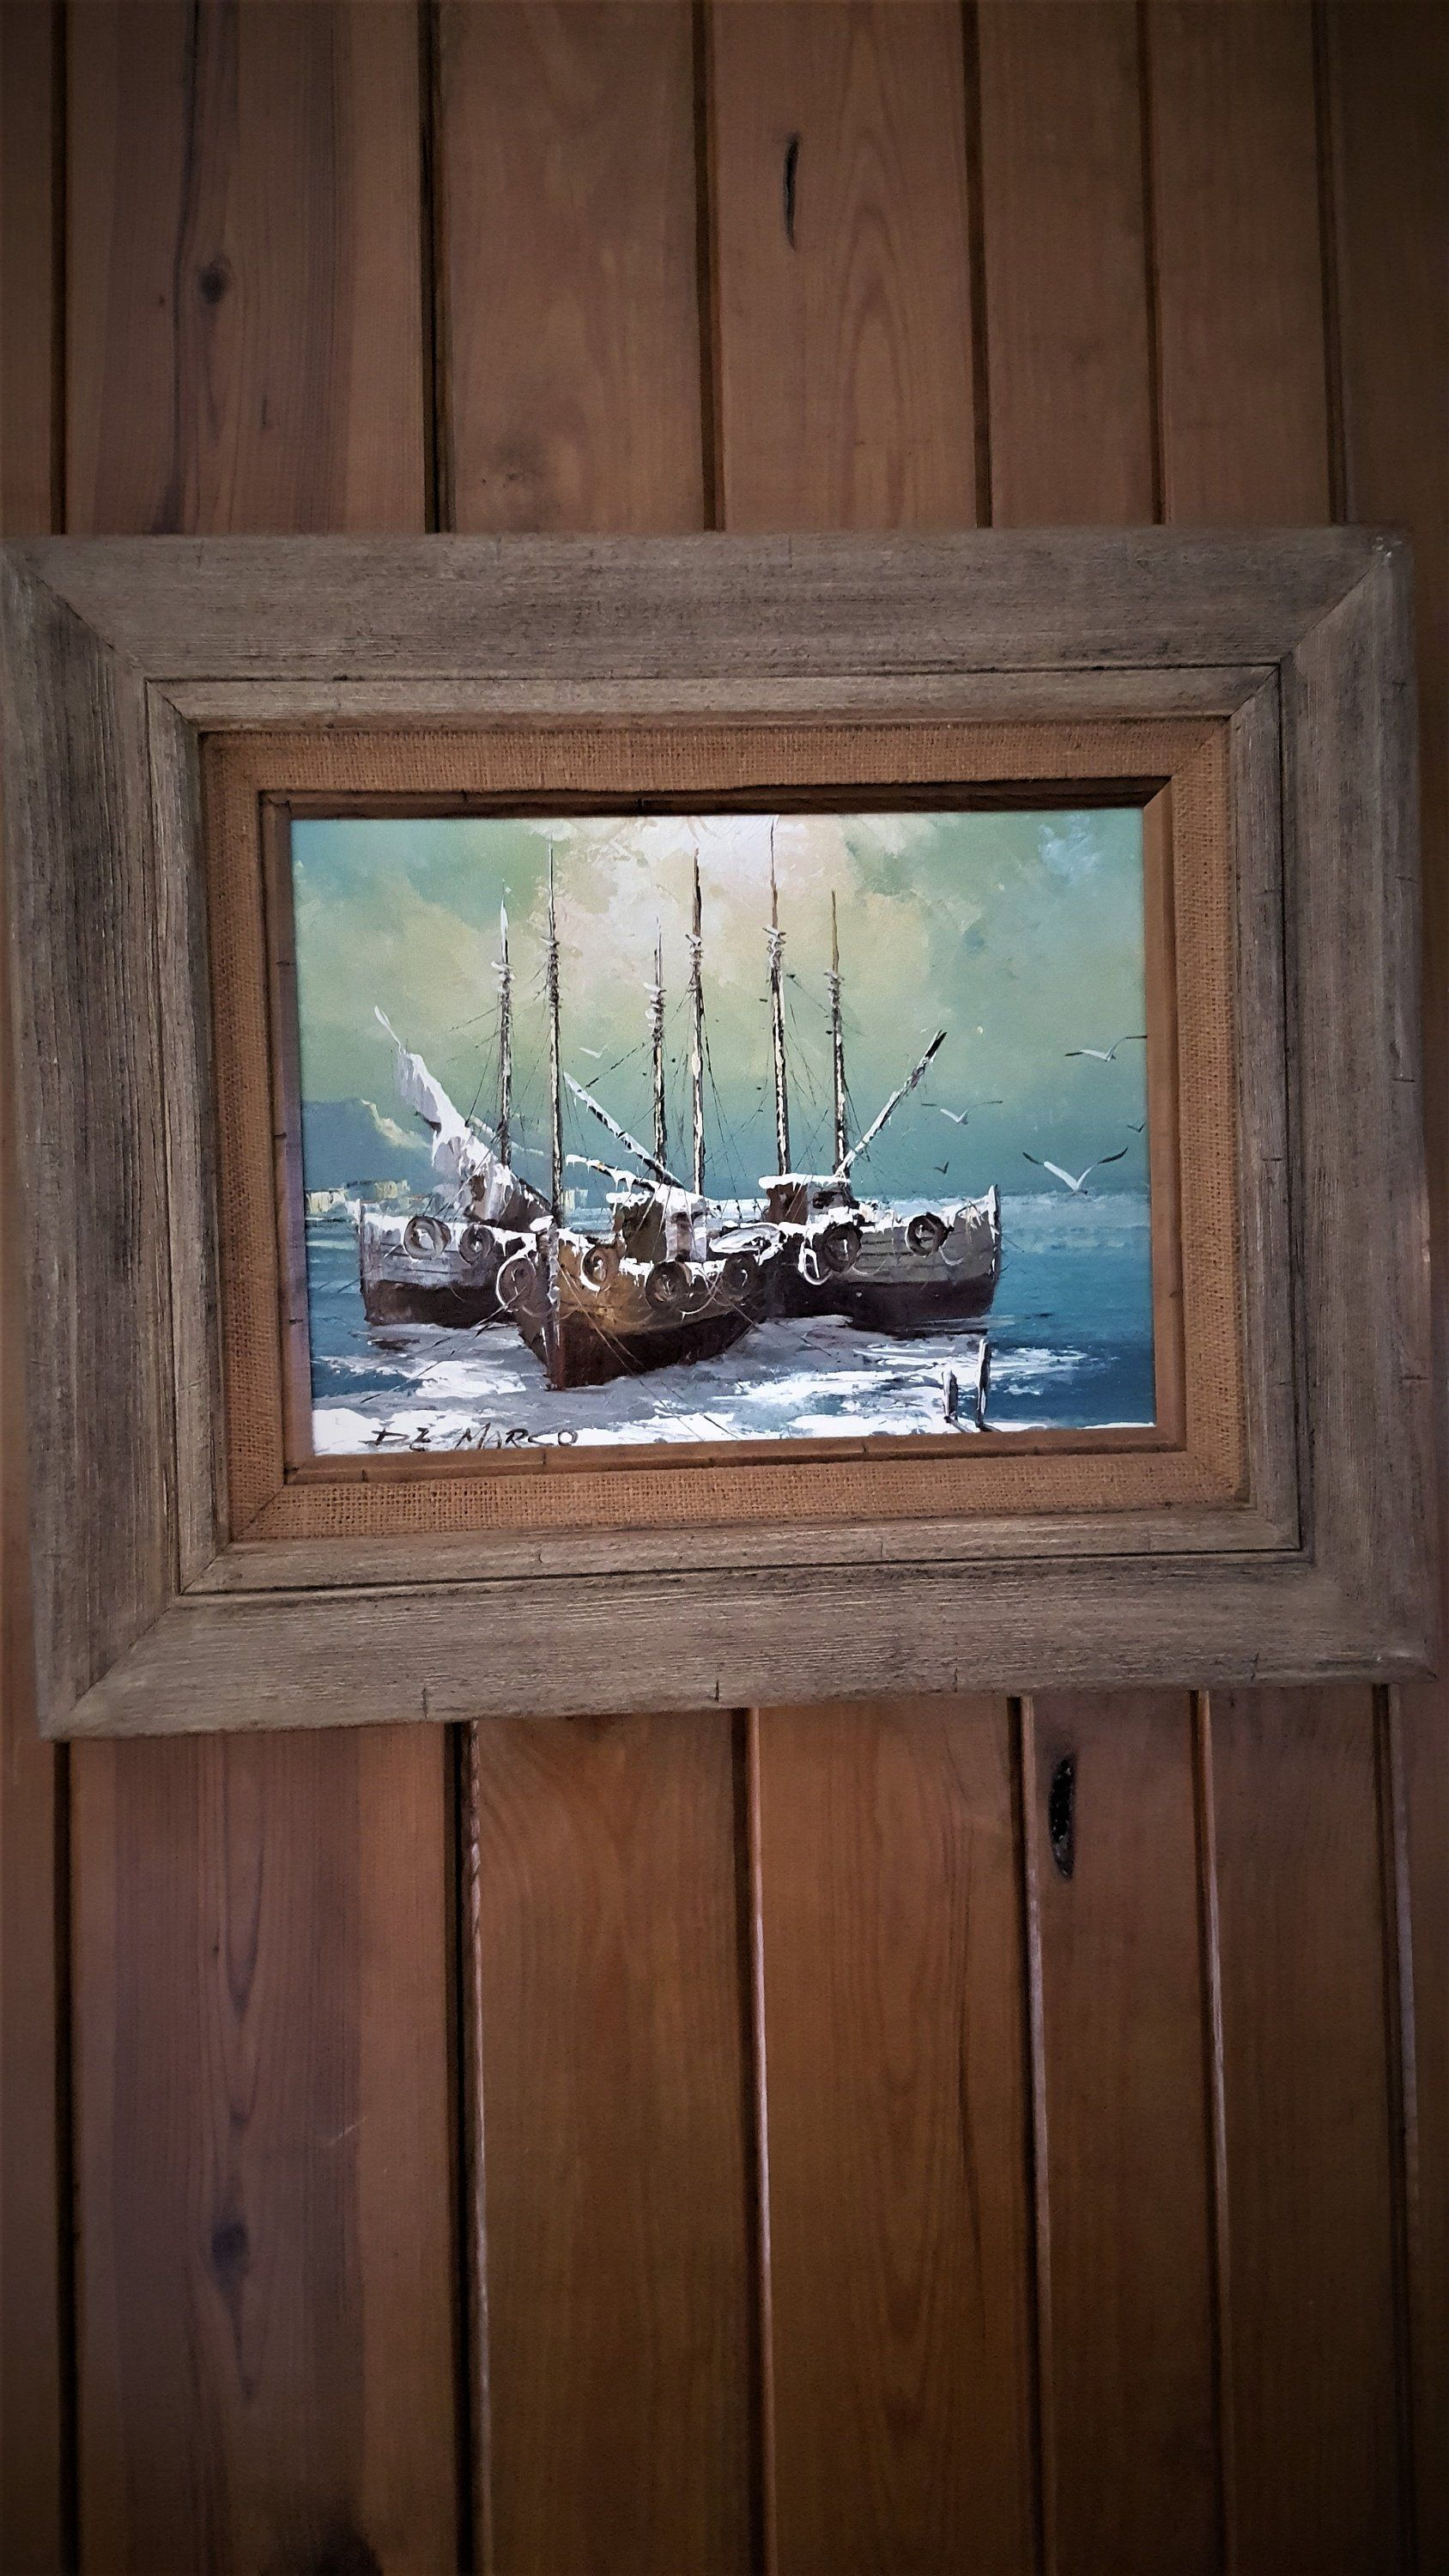 Vintage Richard Demarco Oil Painting On Canvas Ships In The Harbor Richard Demarco Scotland Artist By Bro Oil Painting Oil Painting On Canvas Canvas Painting